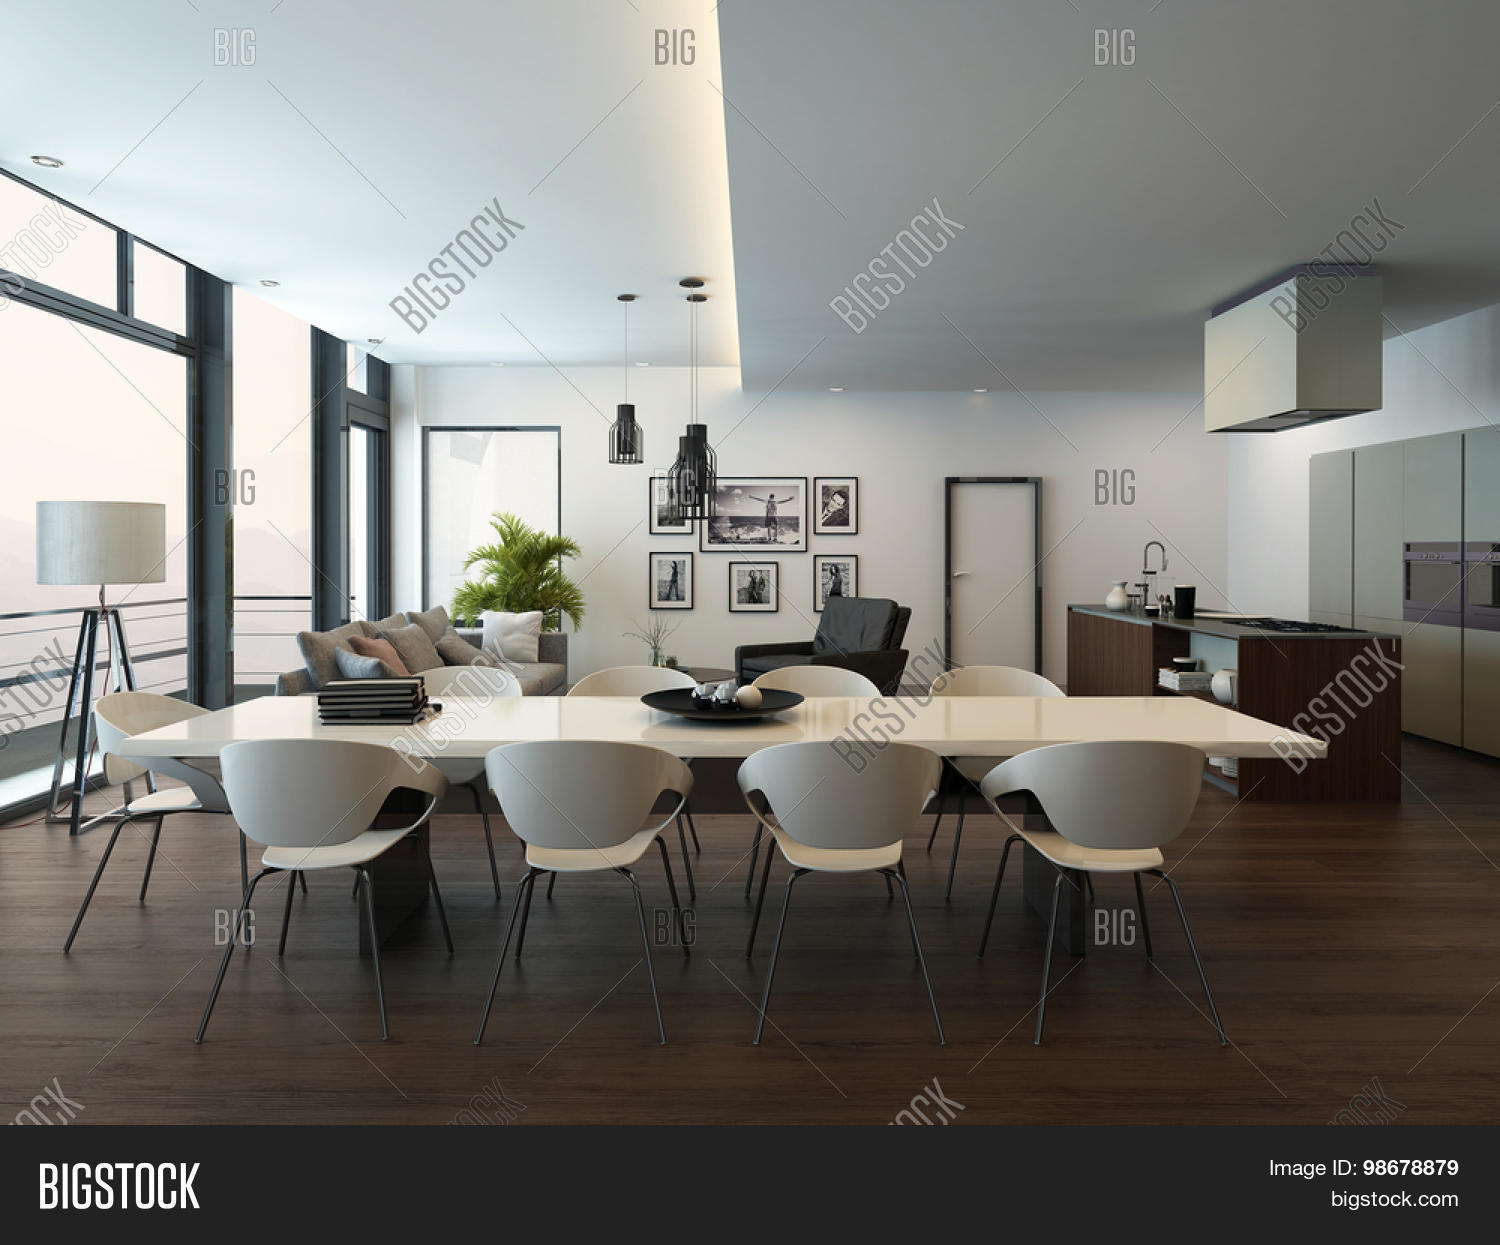 Luxury modern apartment living room image photo bigstock Kitchen table in living room